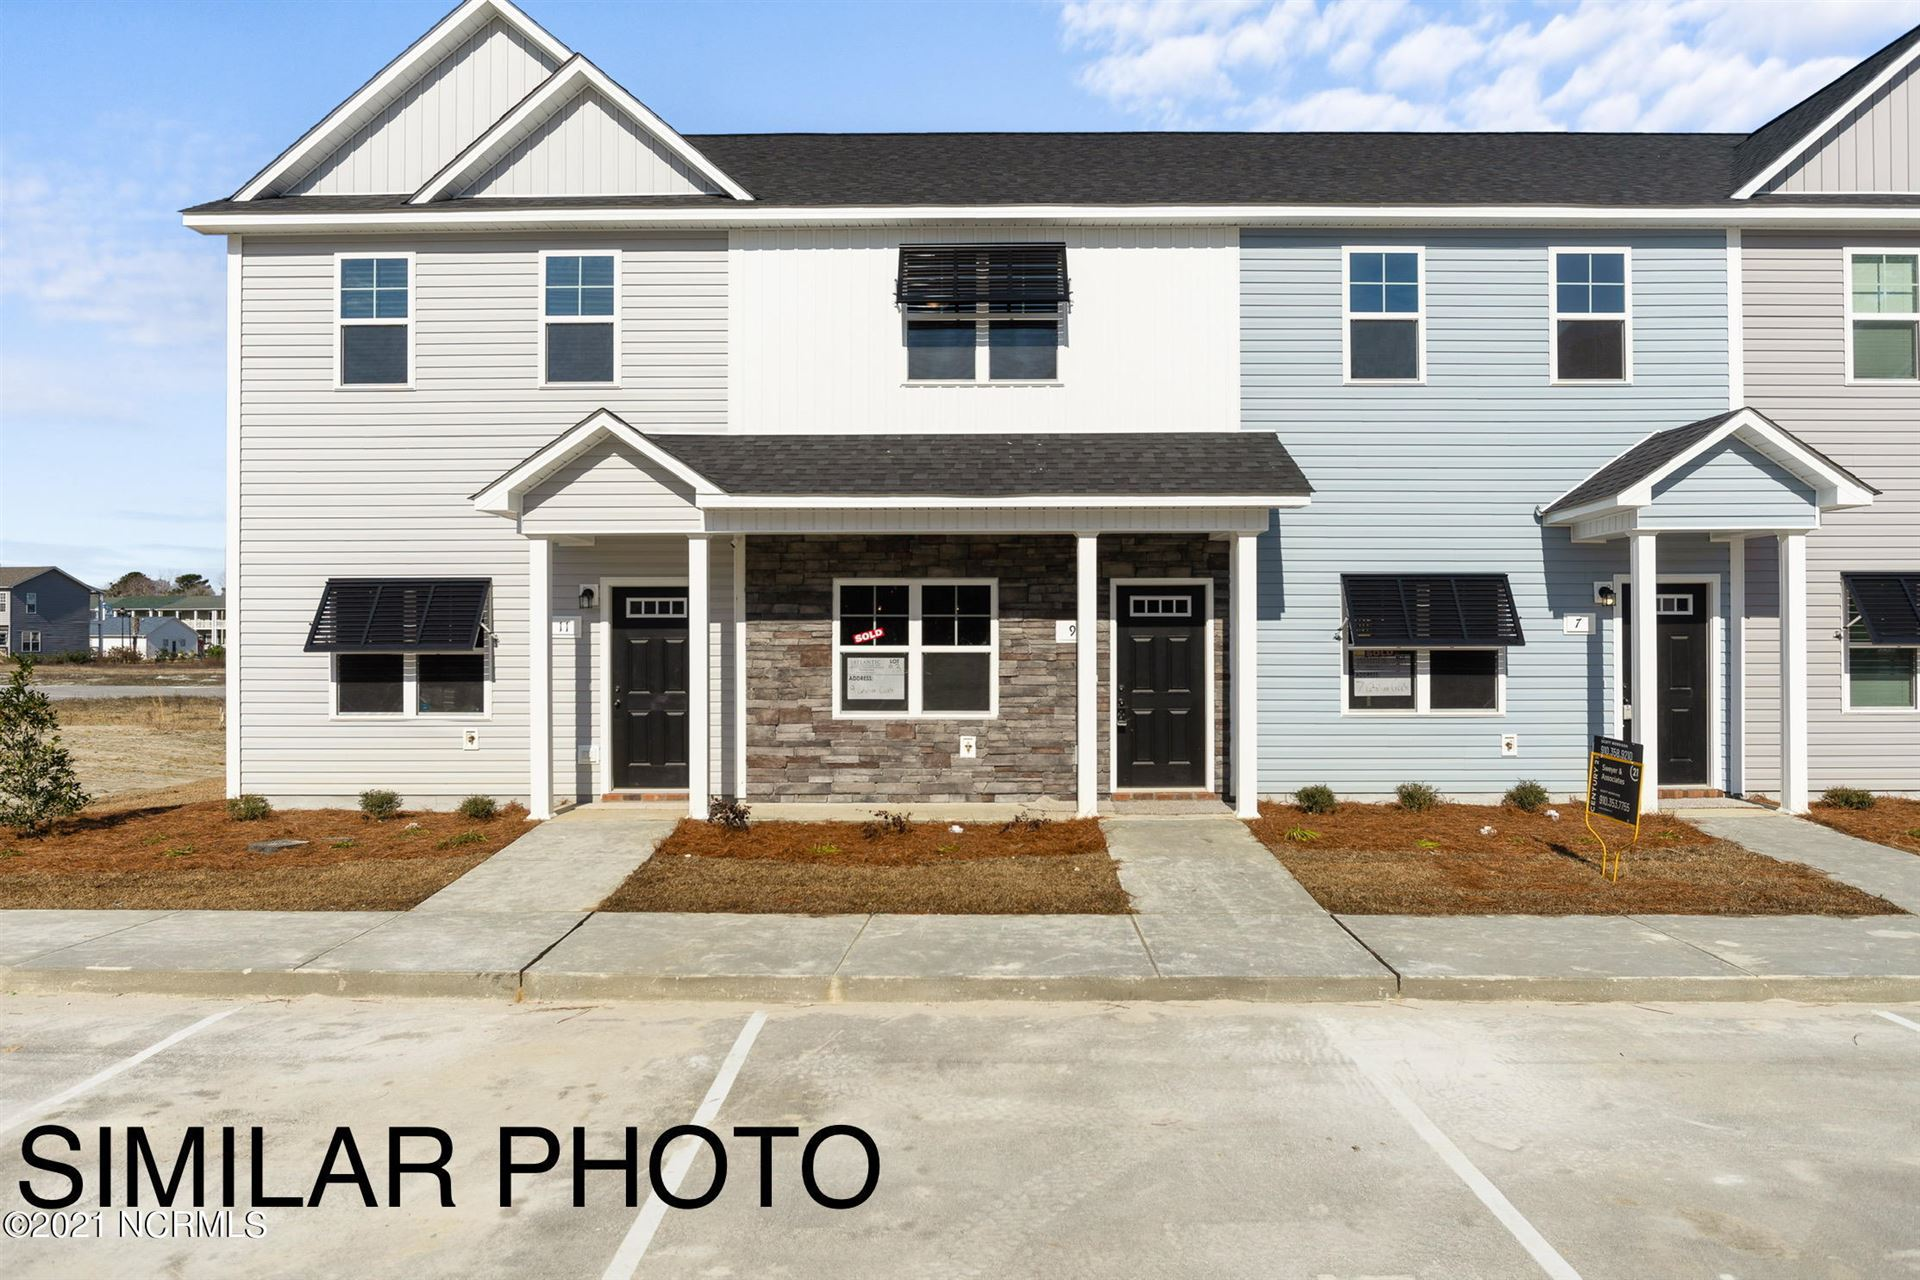 Photo of 61 Outrigger Drive, Swansboro, NC 28584 (MLS # 100262756)